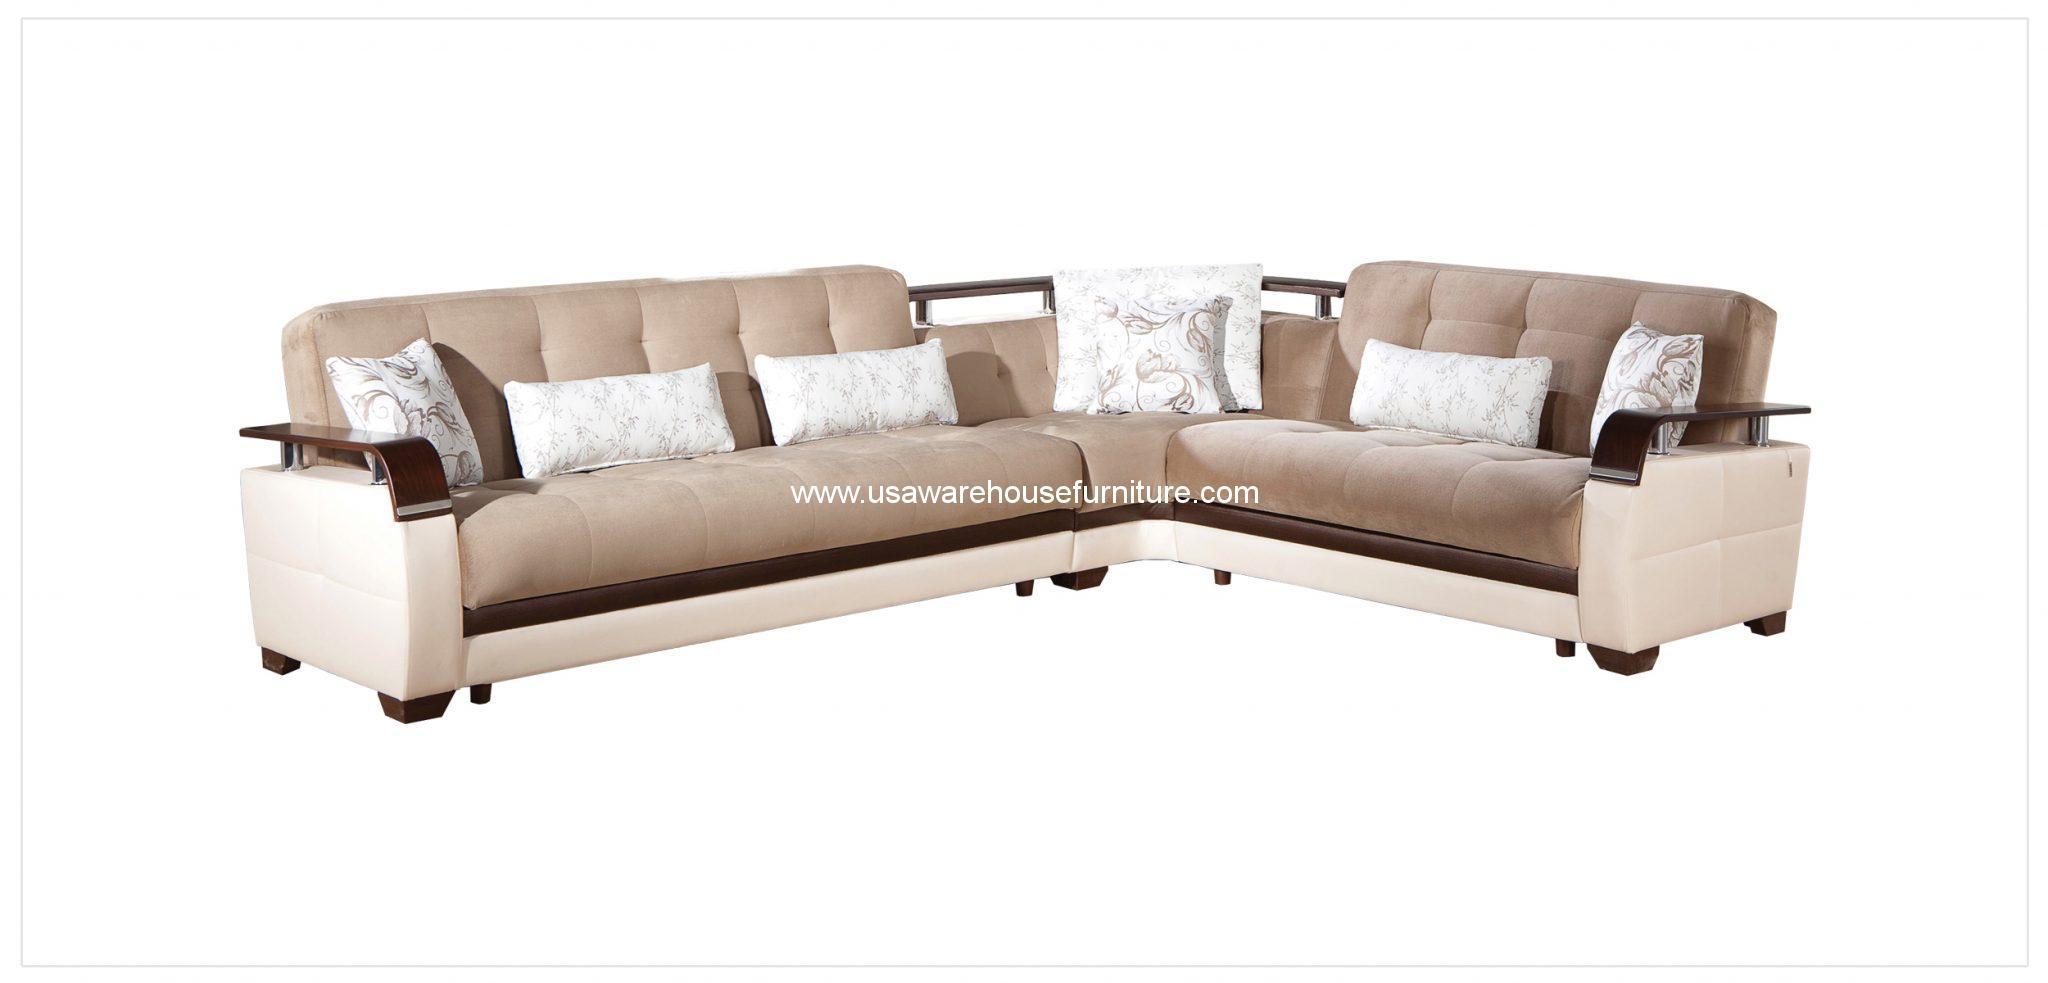 sectional sofas light brown grey leather sofa living room ideas demka dogal sleeper w storage